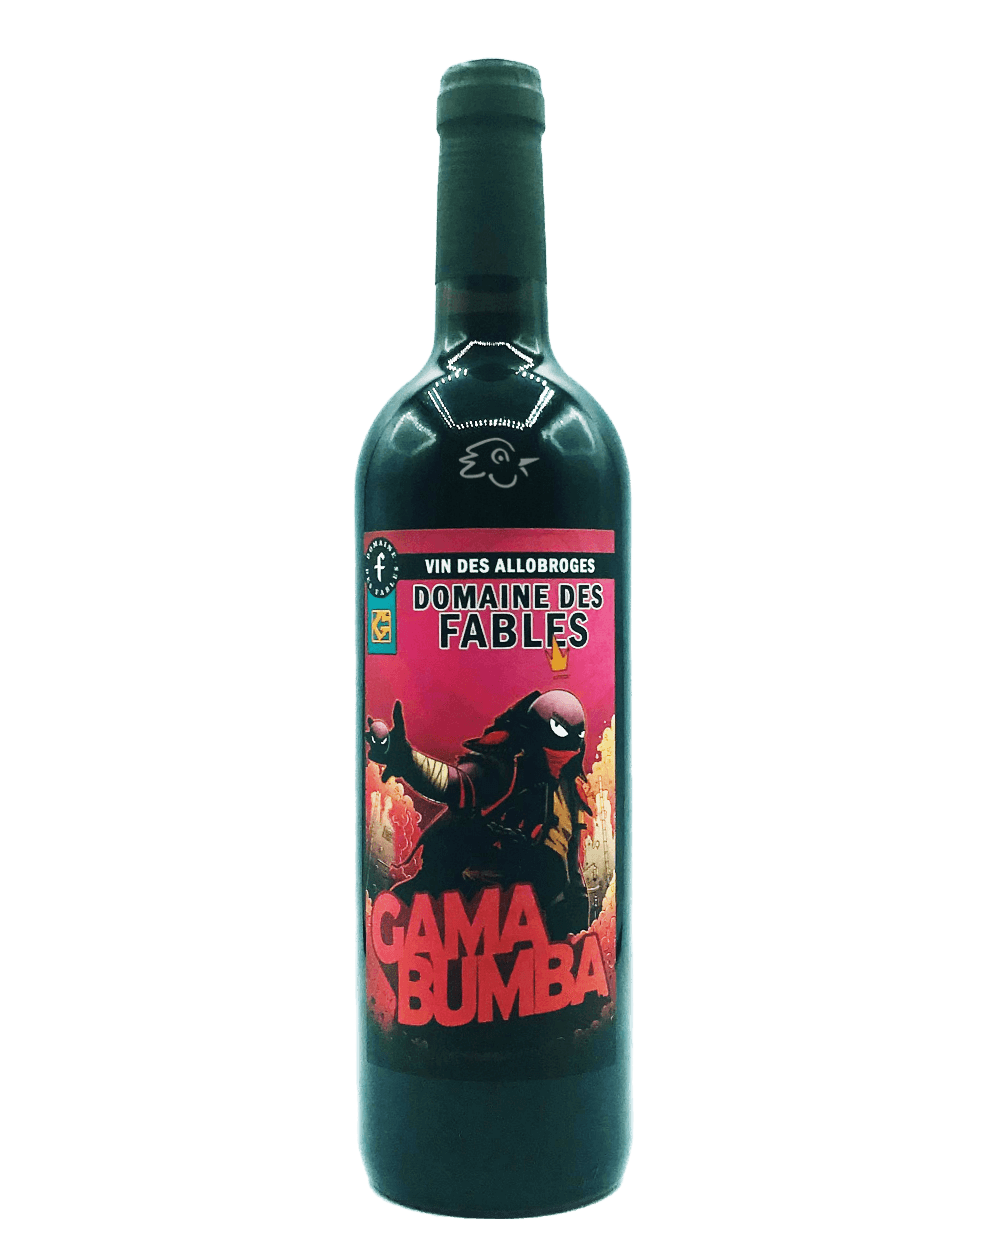 Domaine des Fables - Gamabumba 2019 - Avintures